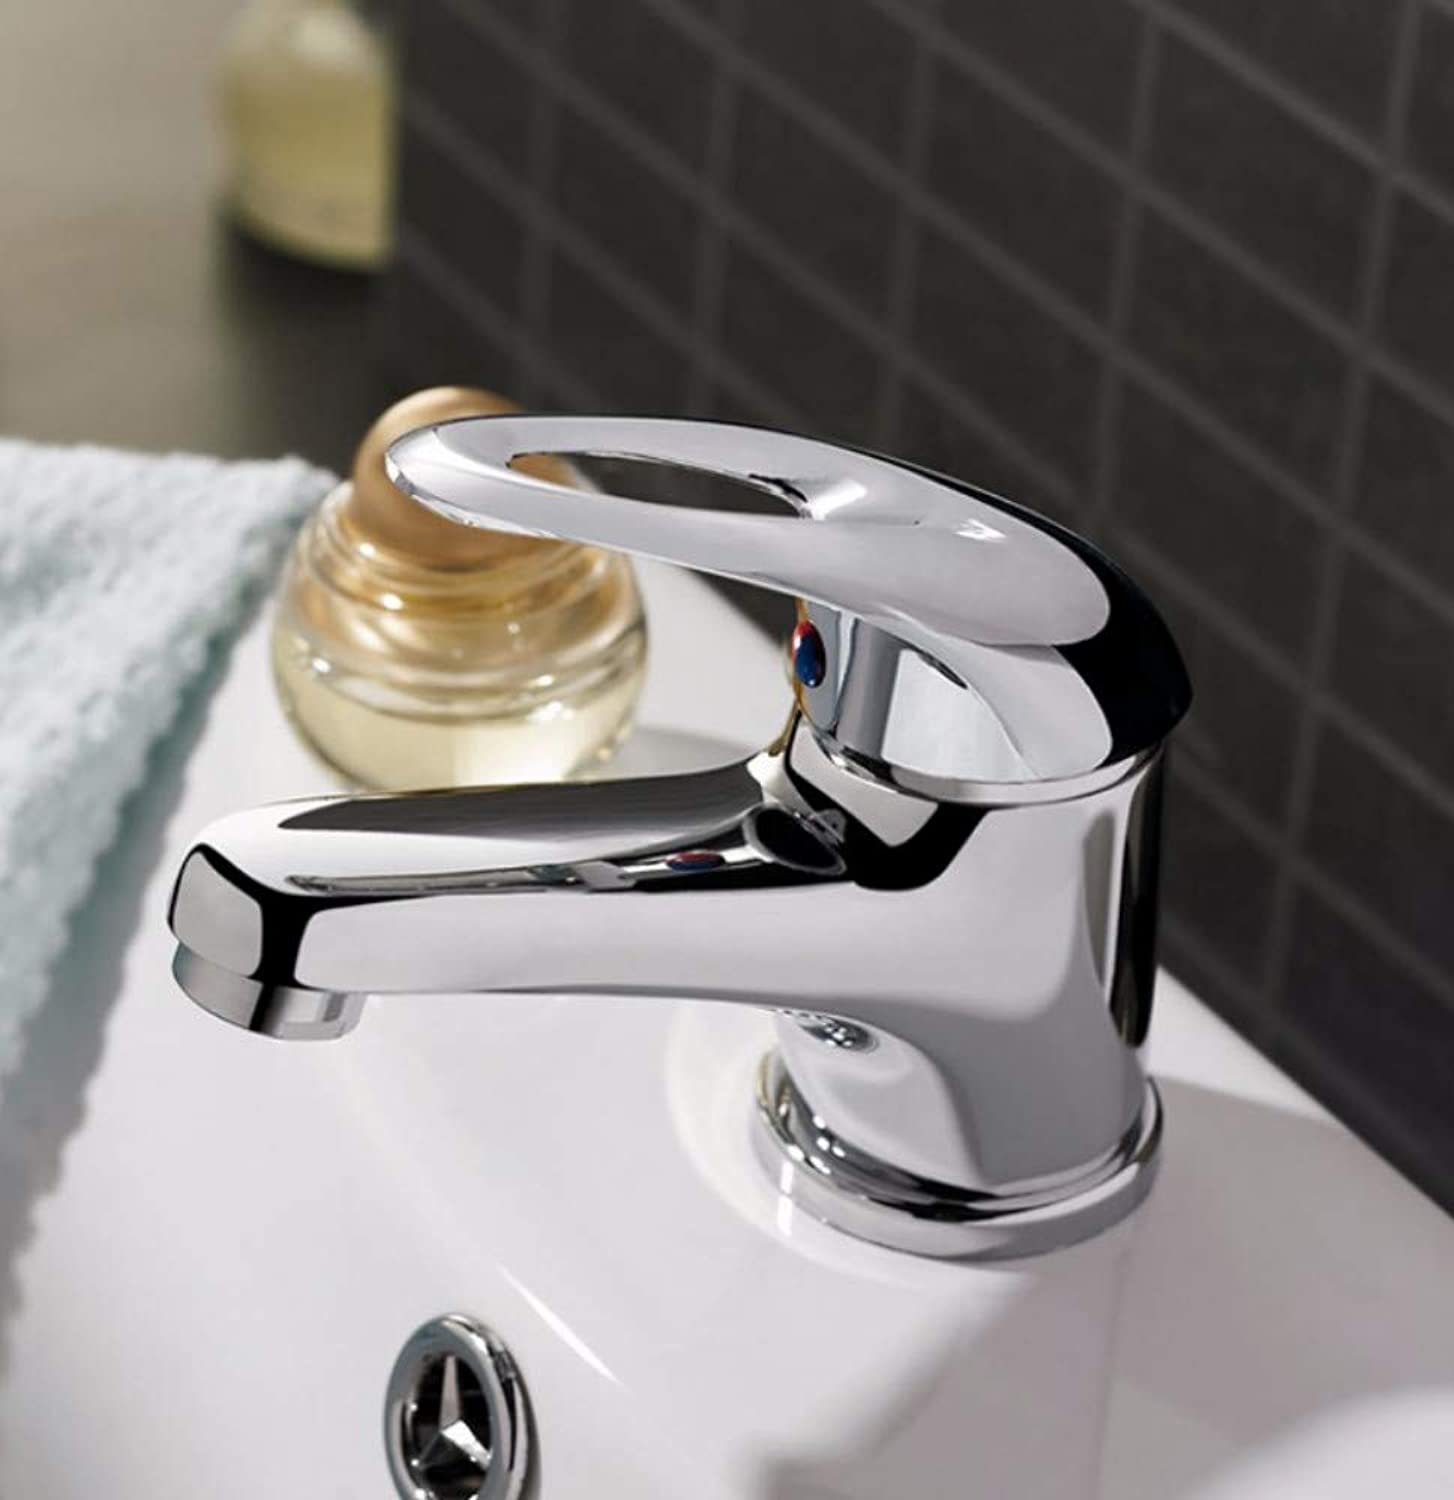 Zlxzlx Classic Style Basin Faucet Deck Mounted Cold and Hot Water Mixer Single Handle